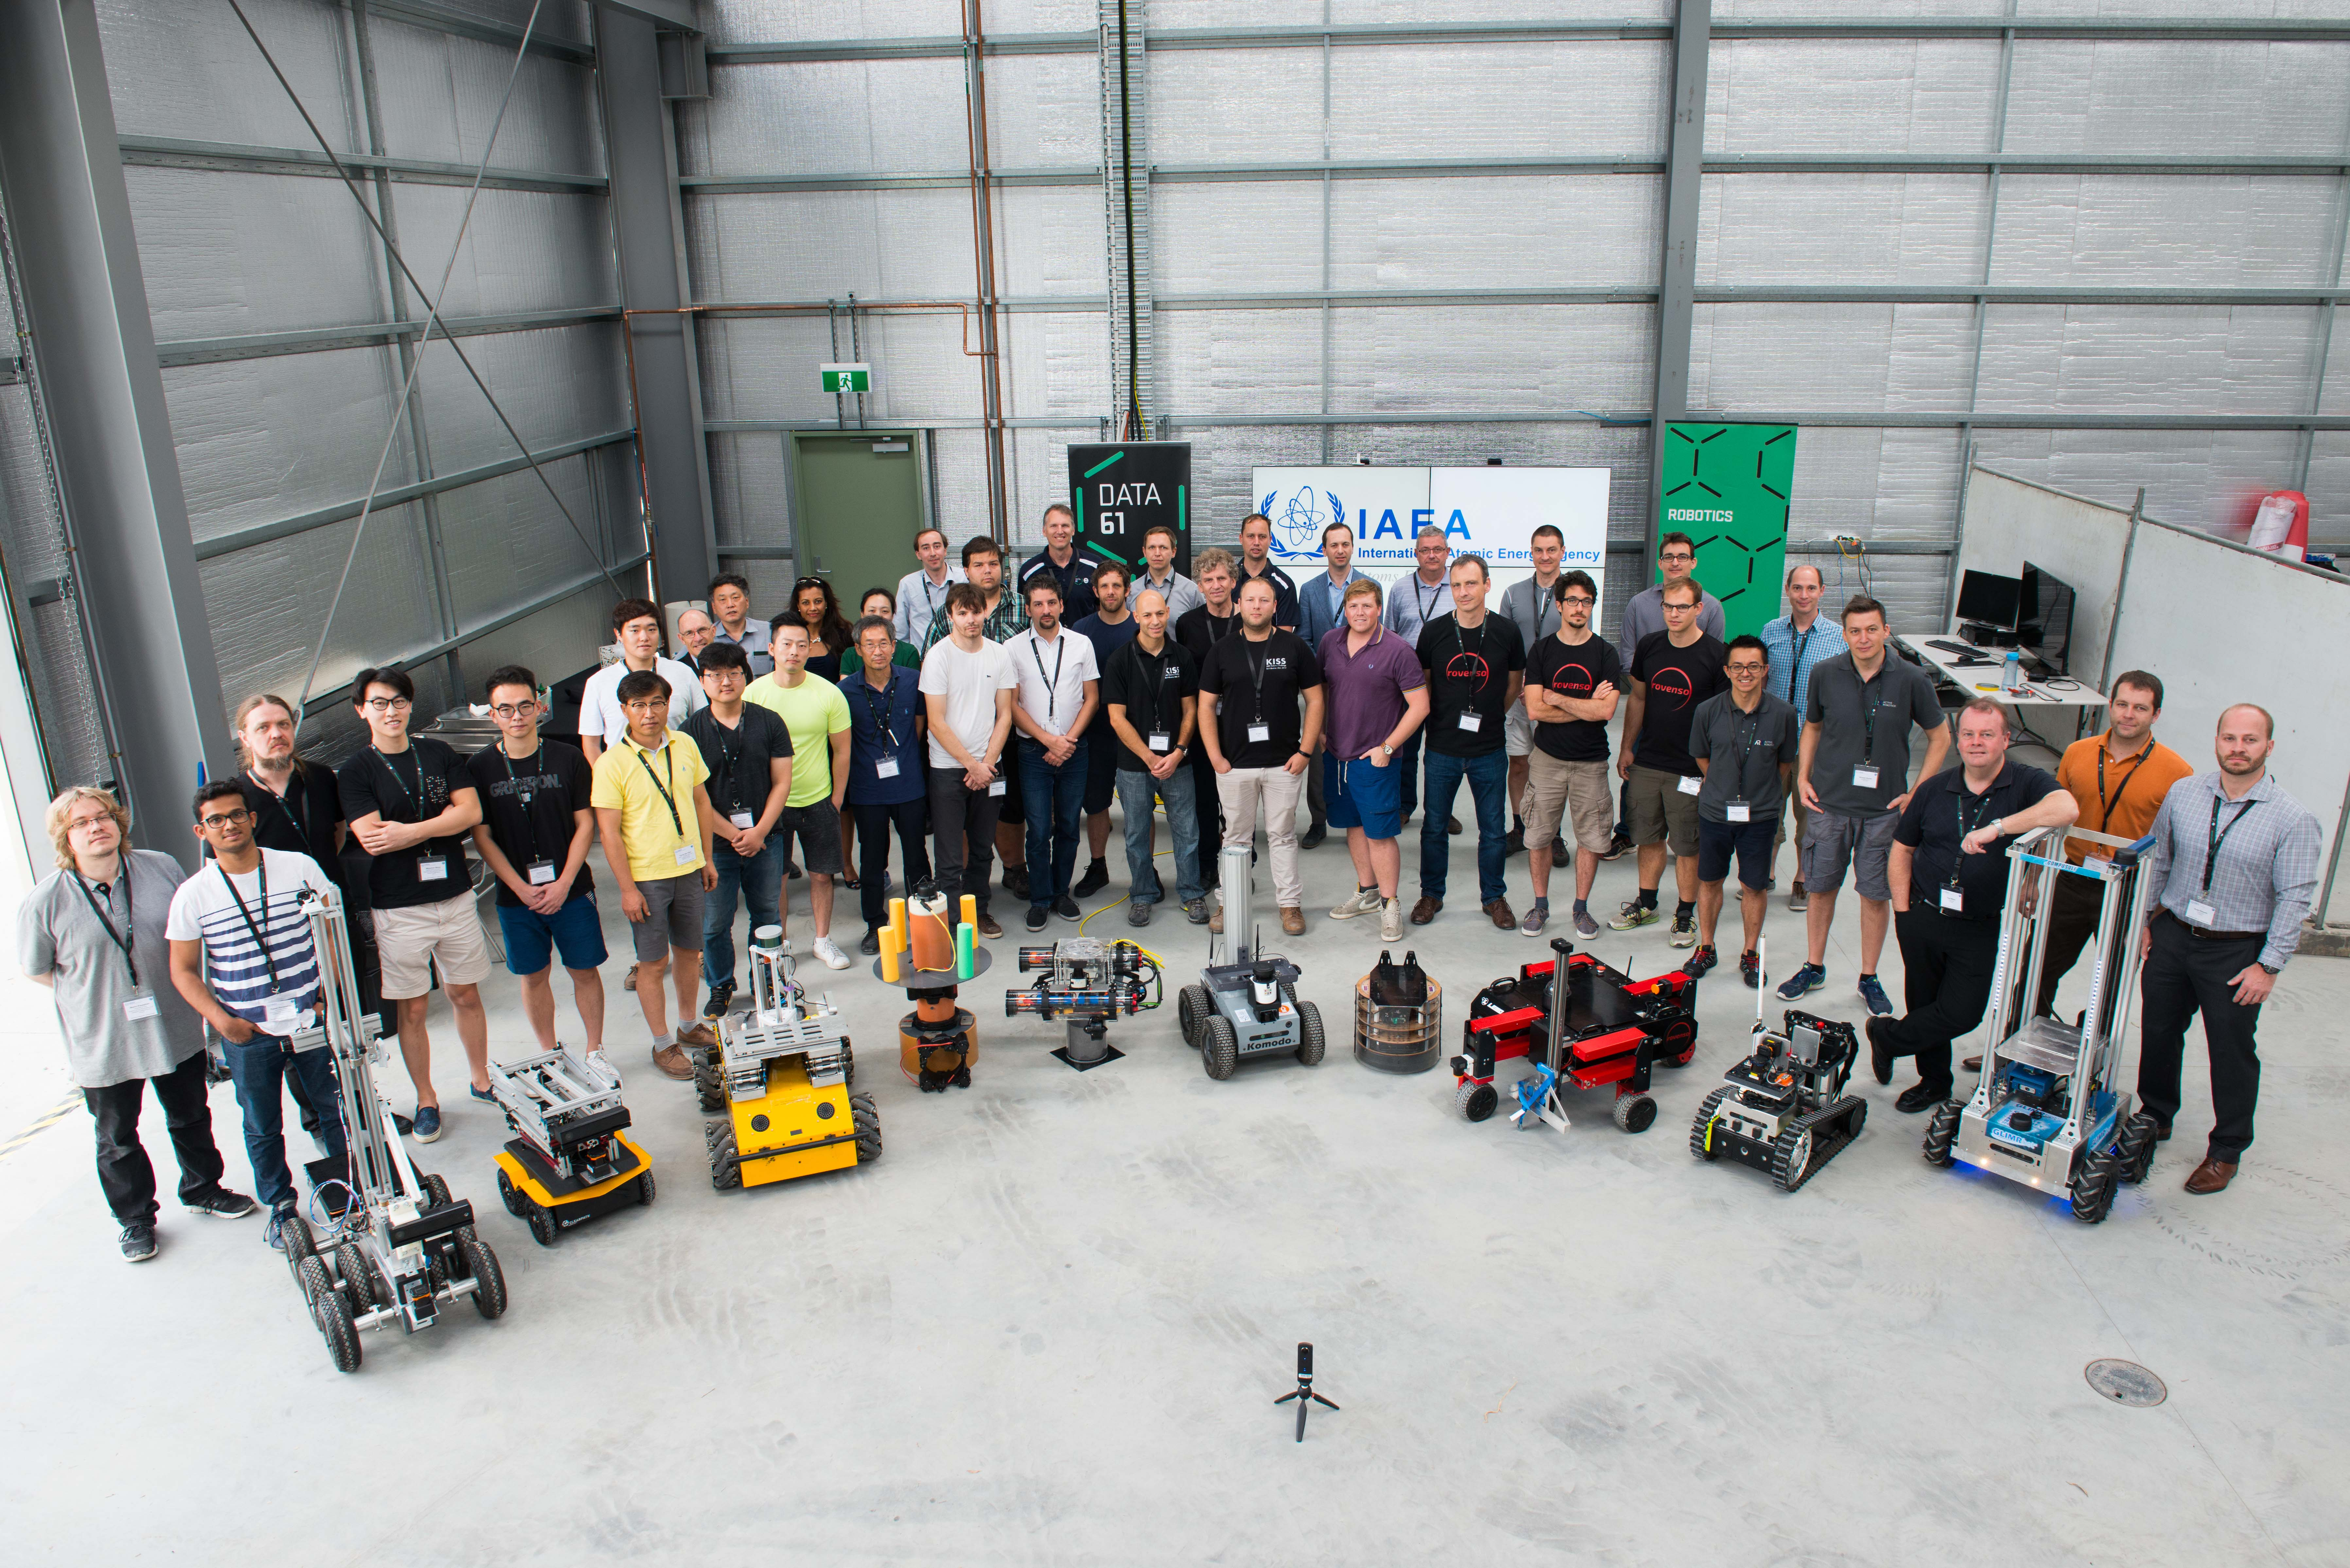 In a warehouse, a large group of people stand in a semi-circle with several small robots positioned in front of them.